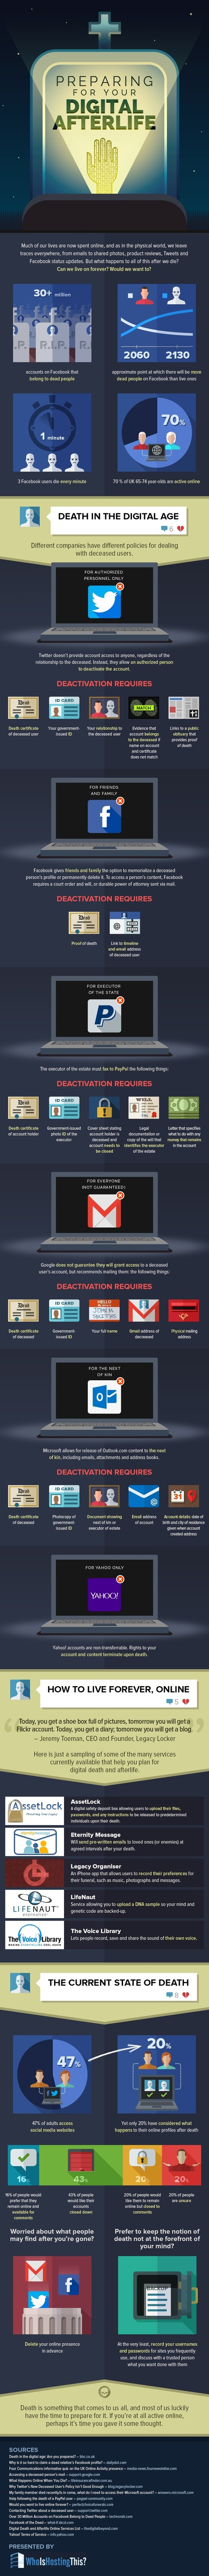 Facebook, Twitter, Email – How To Prepare For Your Digital Afterlife [INFOGRAPHIC] | MarketingHits | Scoop.it